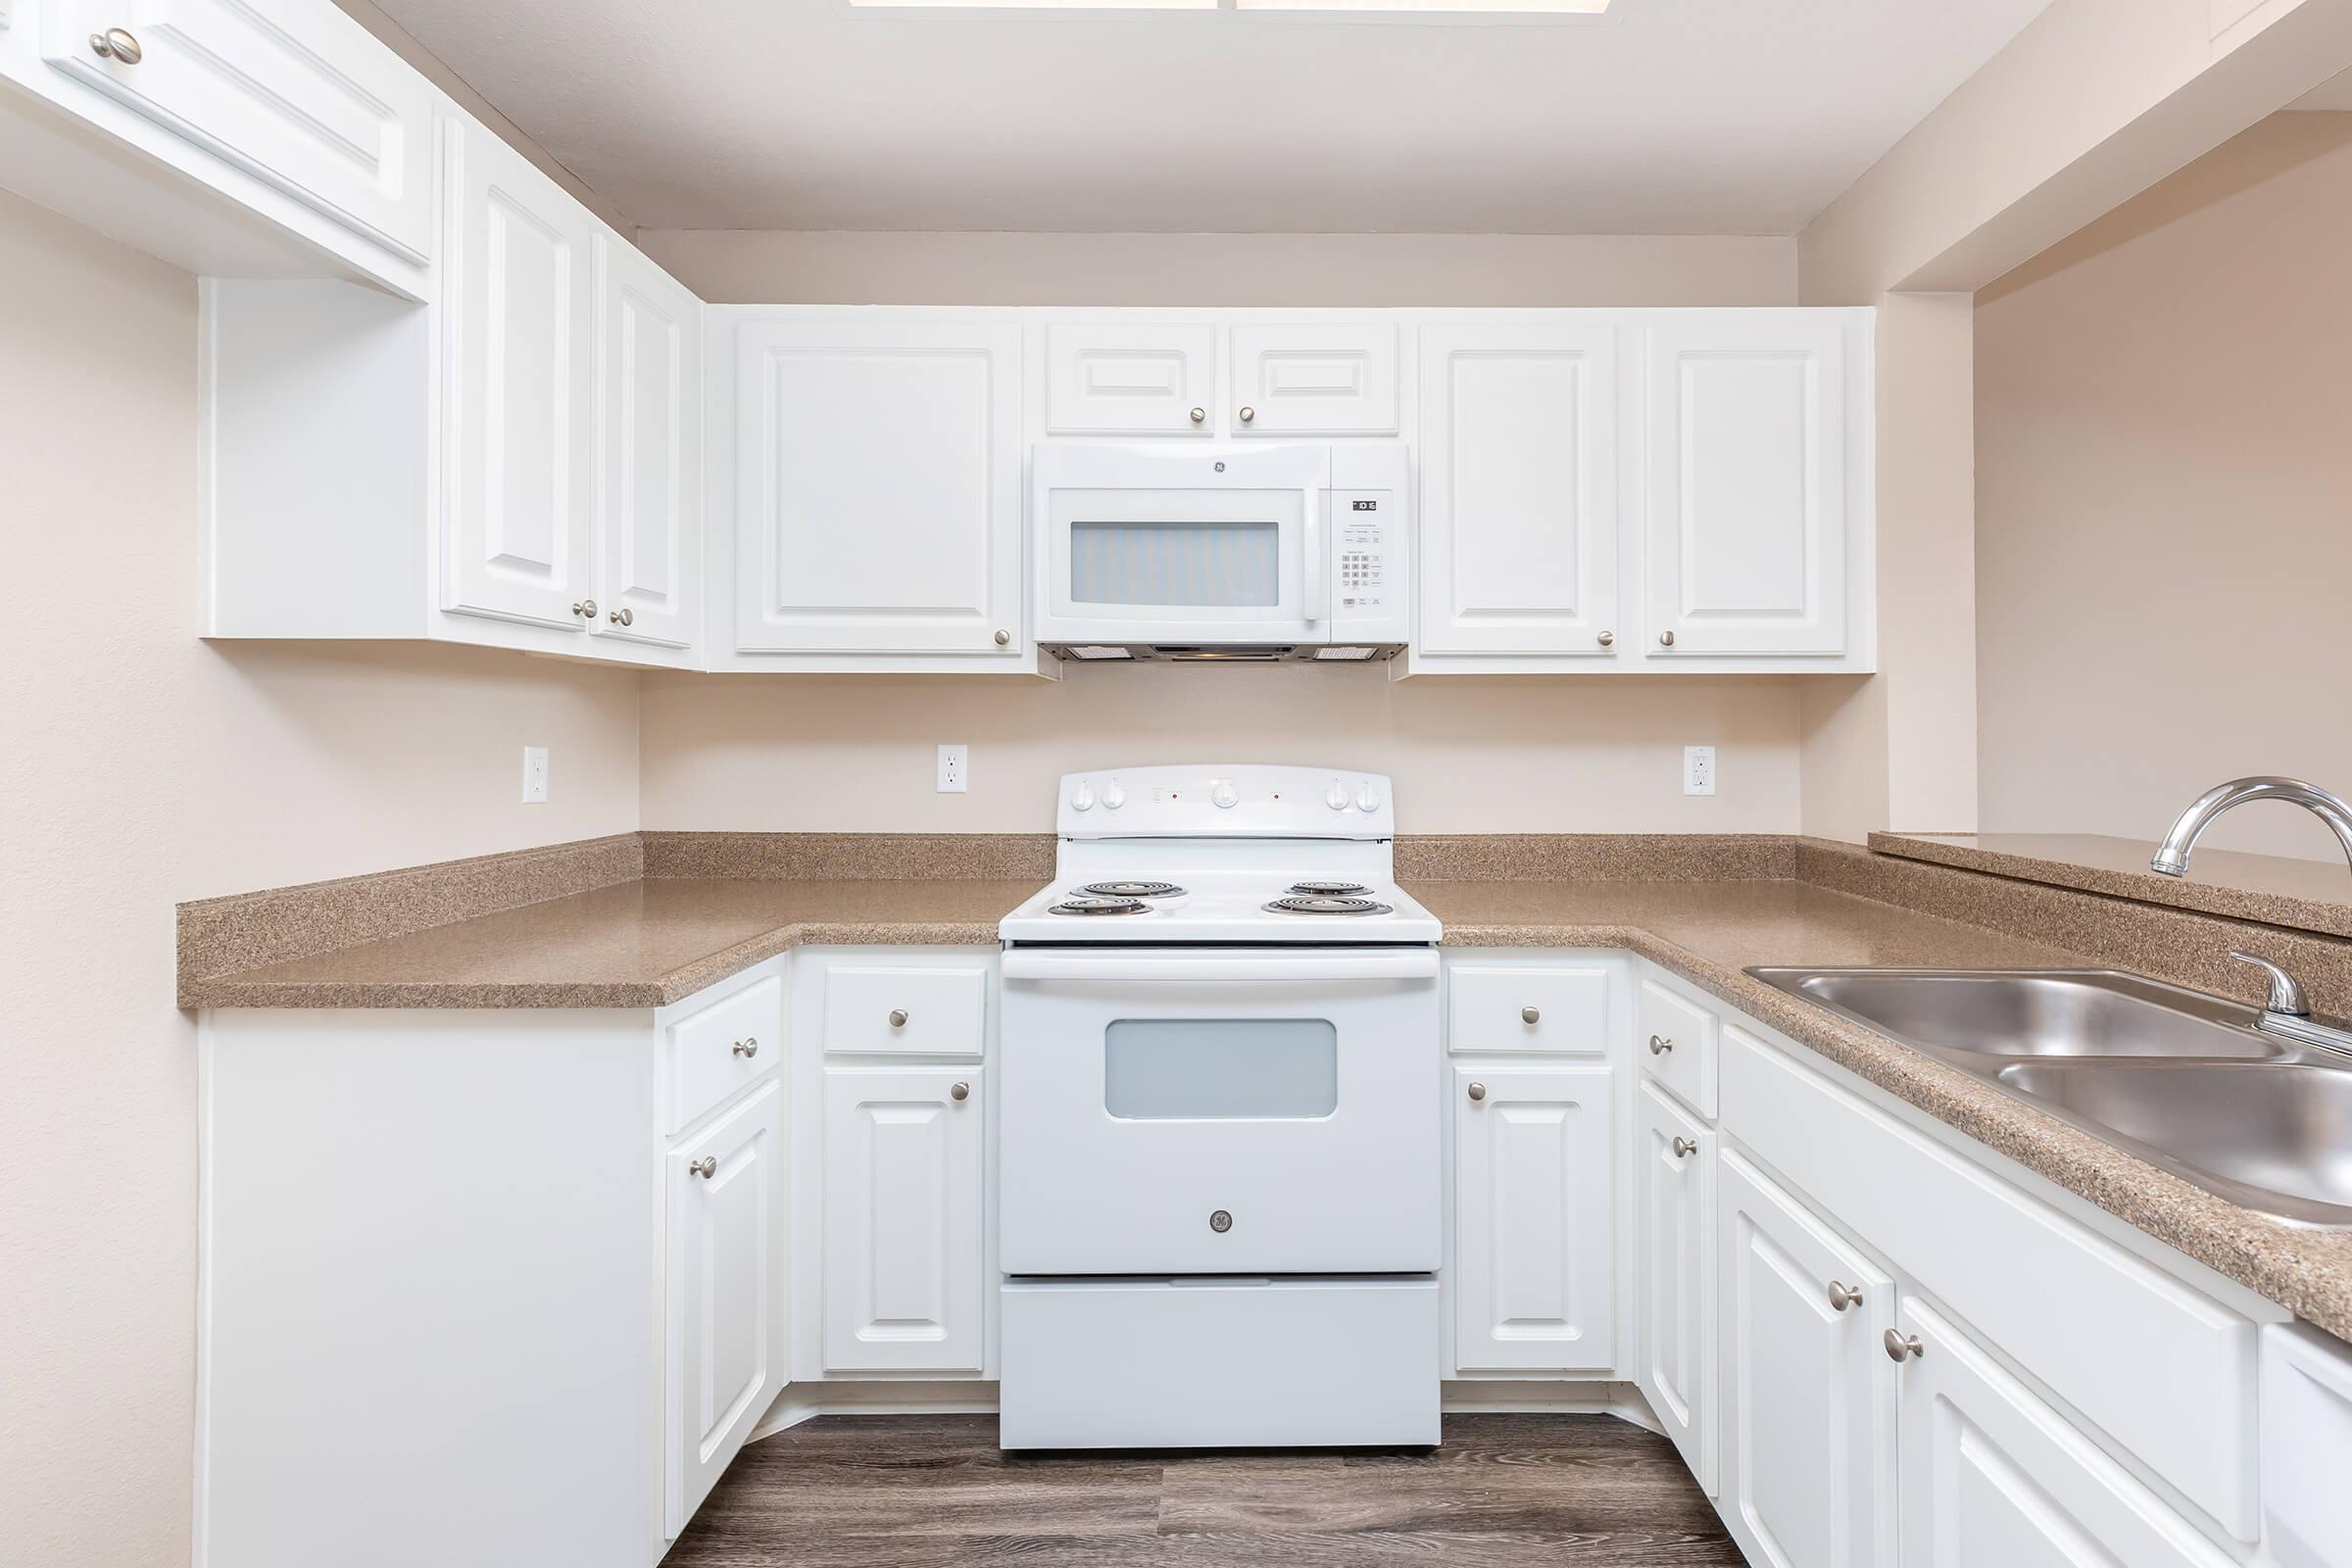 Vacant kitchen with white appliances